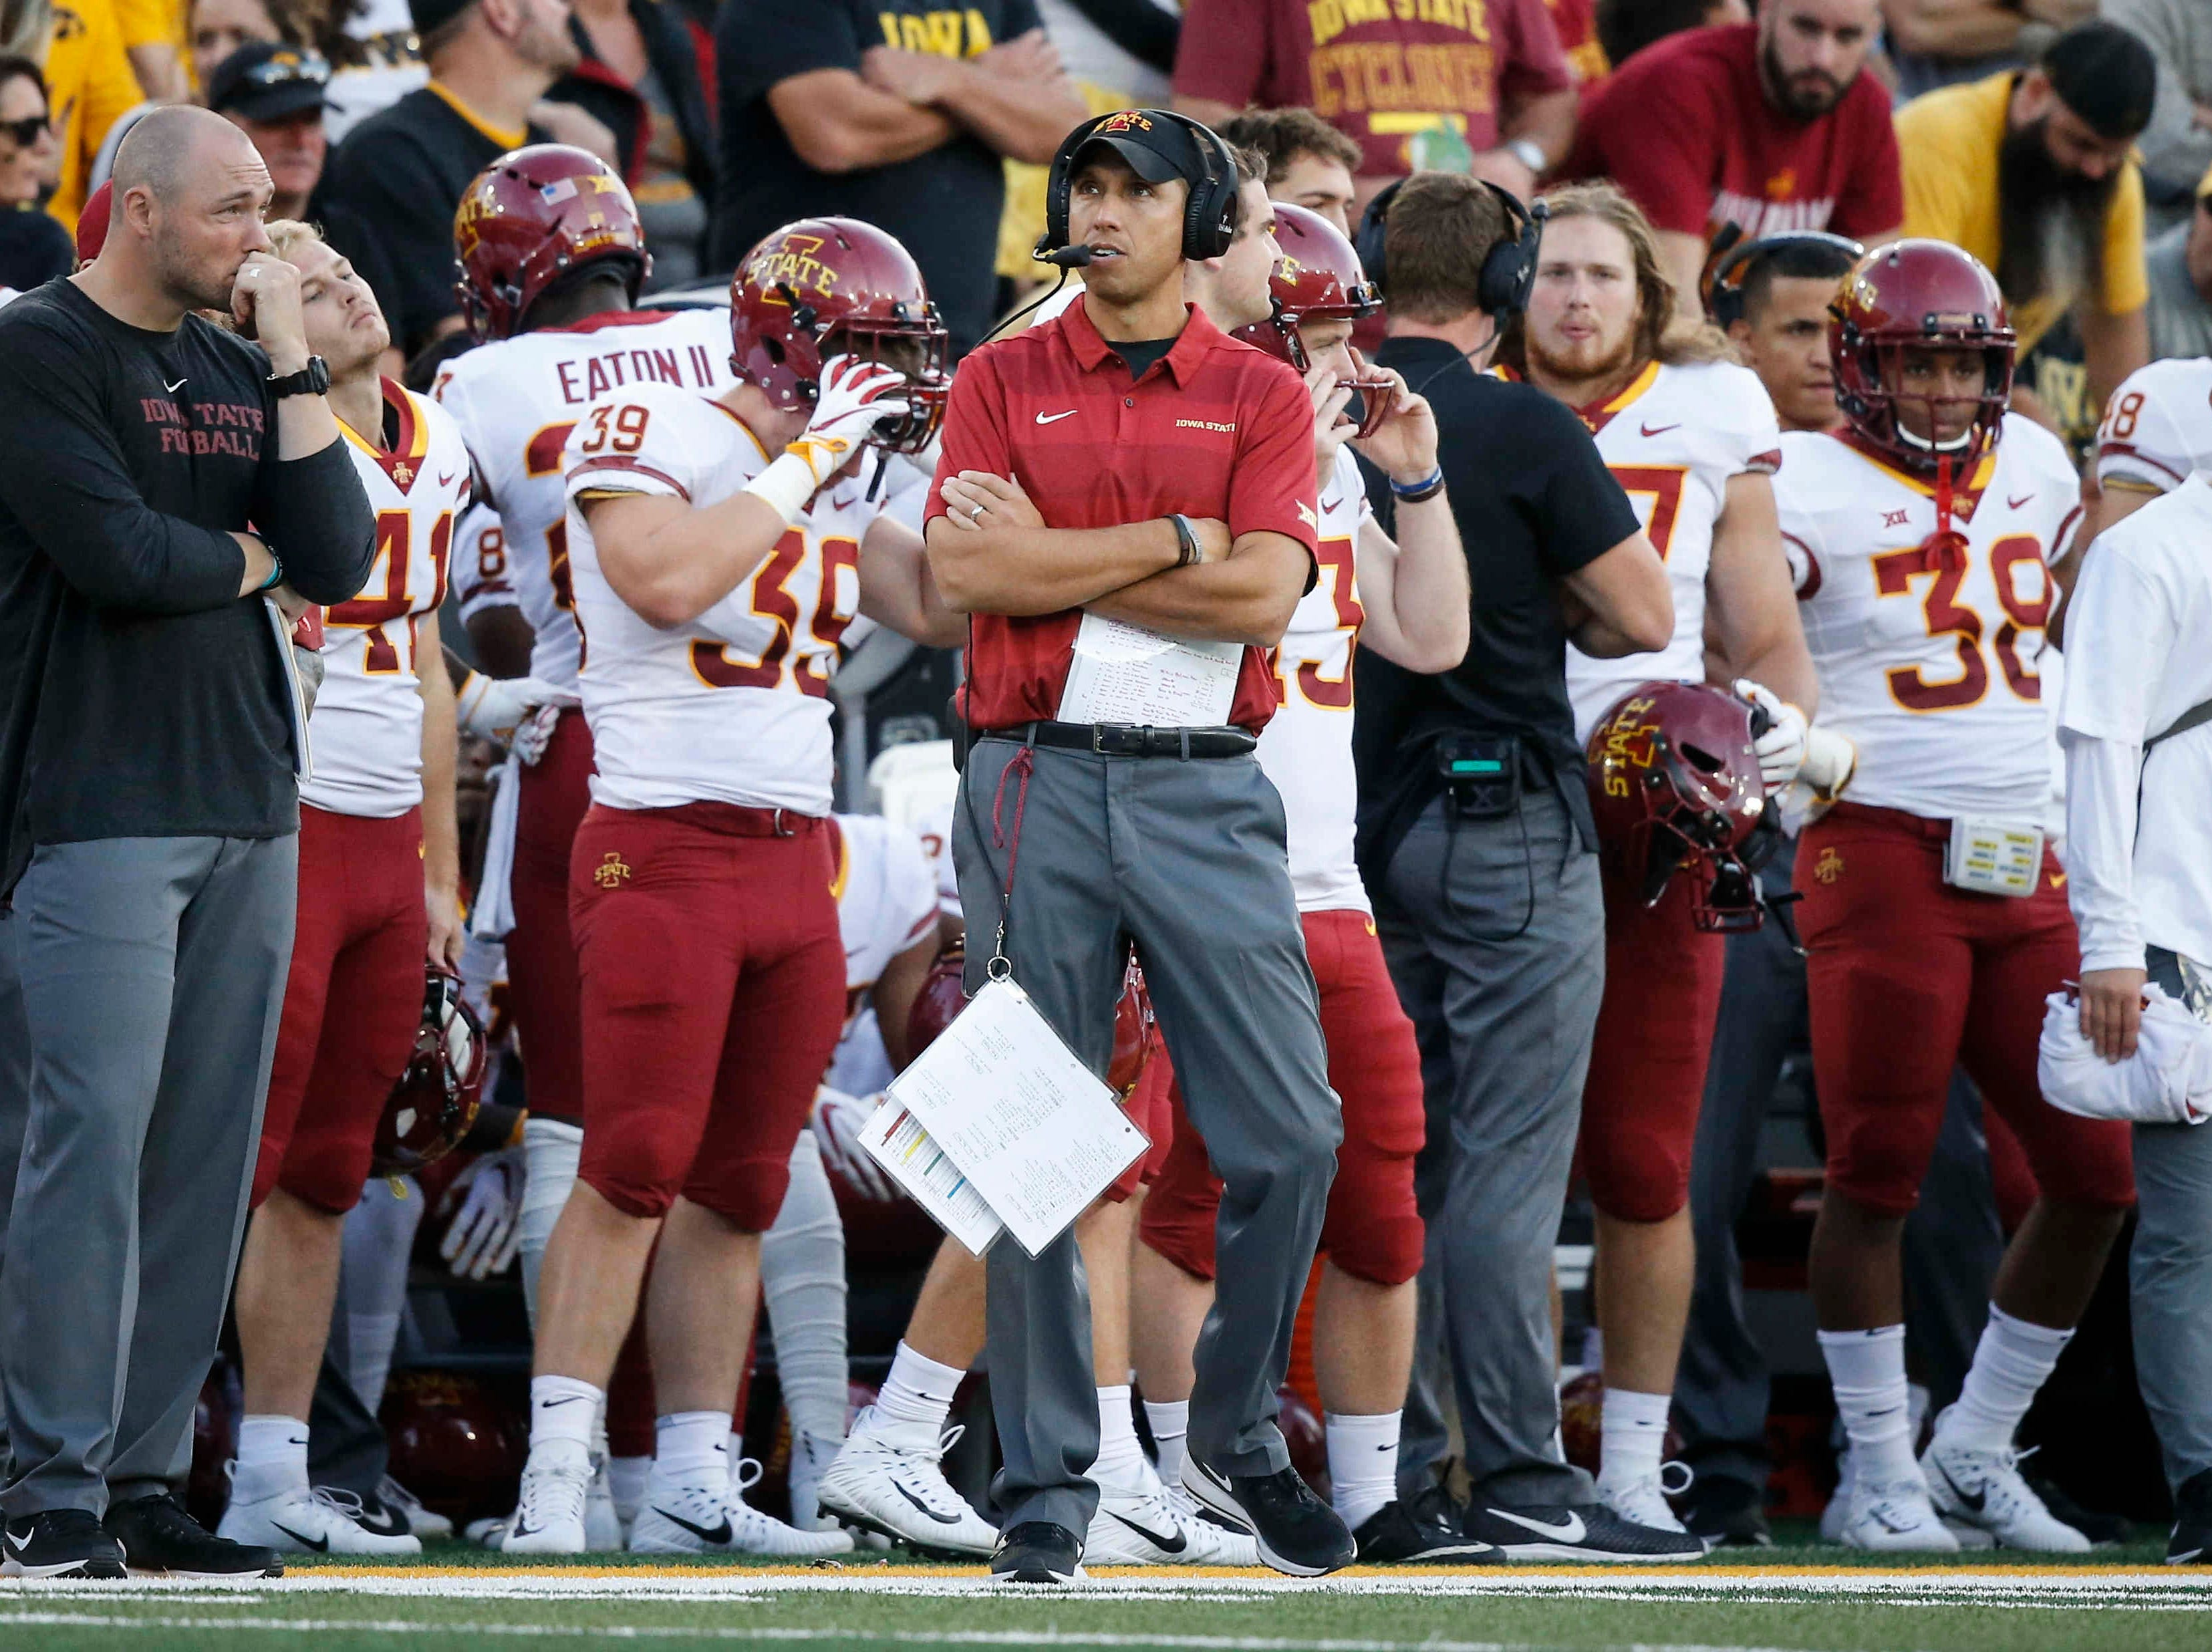 Iowa State head football coach Matt Campbell looks on after a play against Iowa on Saturday, Sept. 8 2018, at Kinnick Stadium in Iowa City.